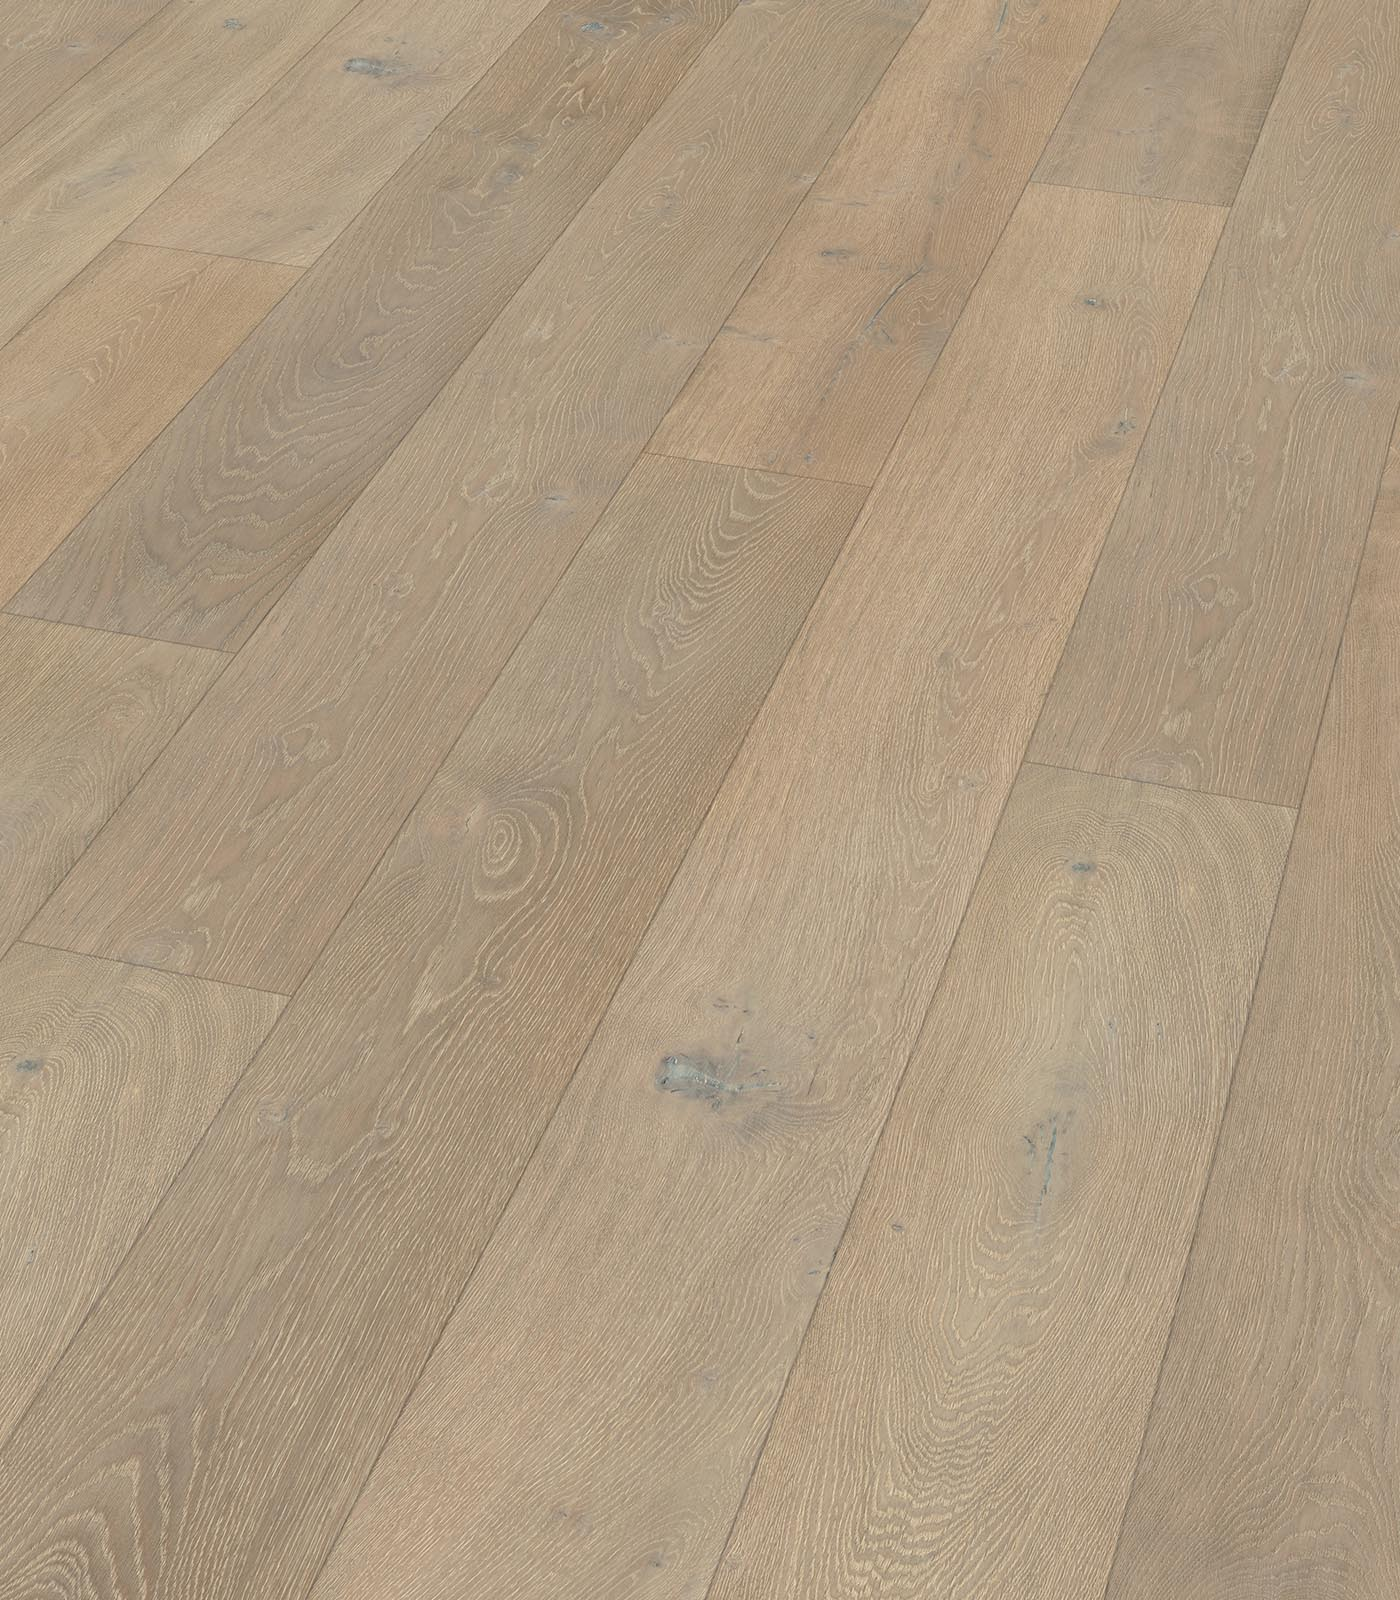 Tahiti-Lifstyle Collection-European Oak Floors-angle